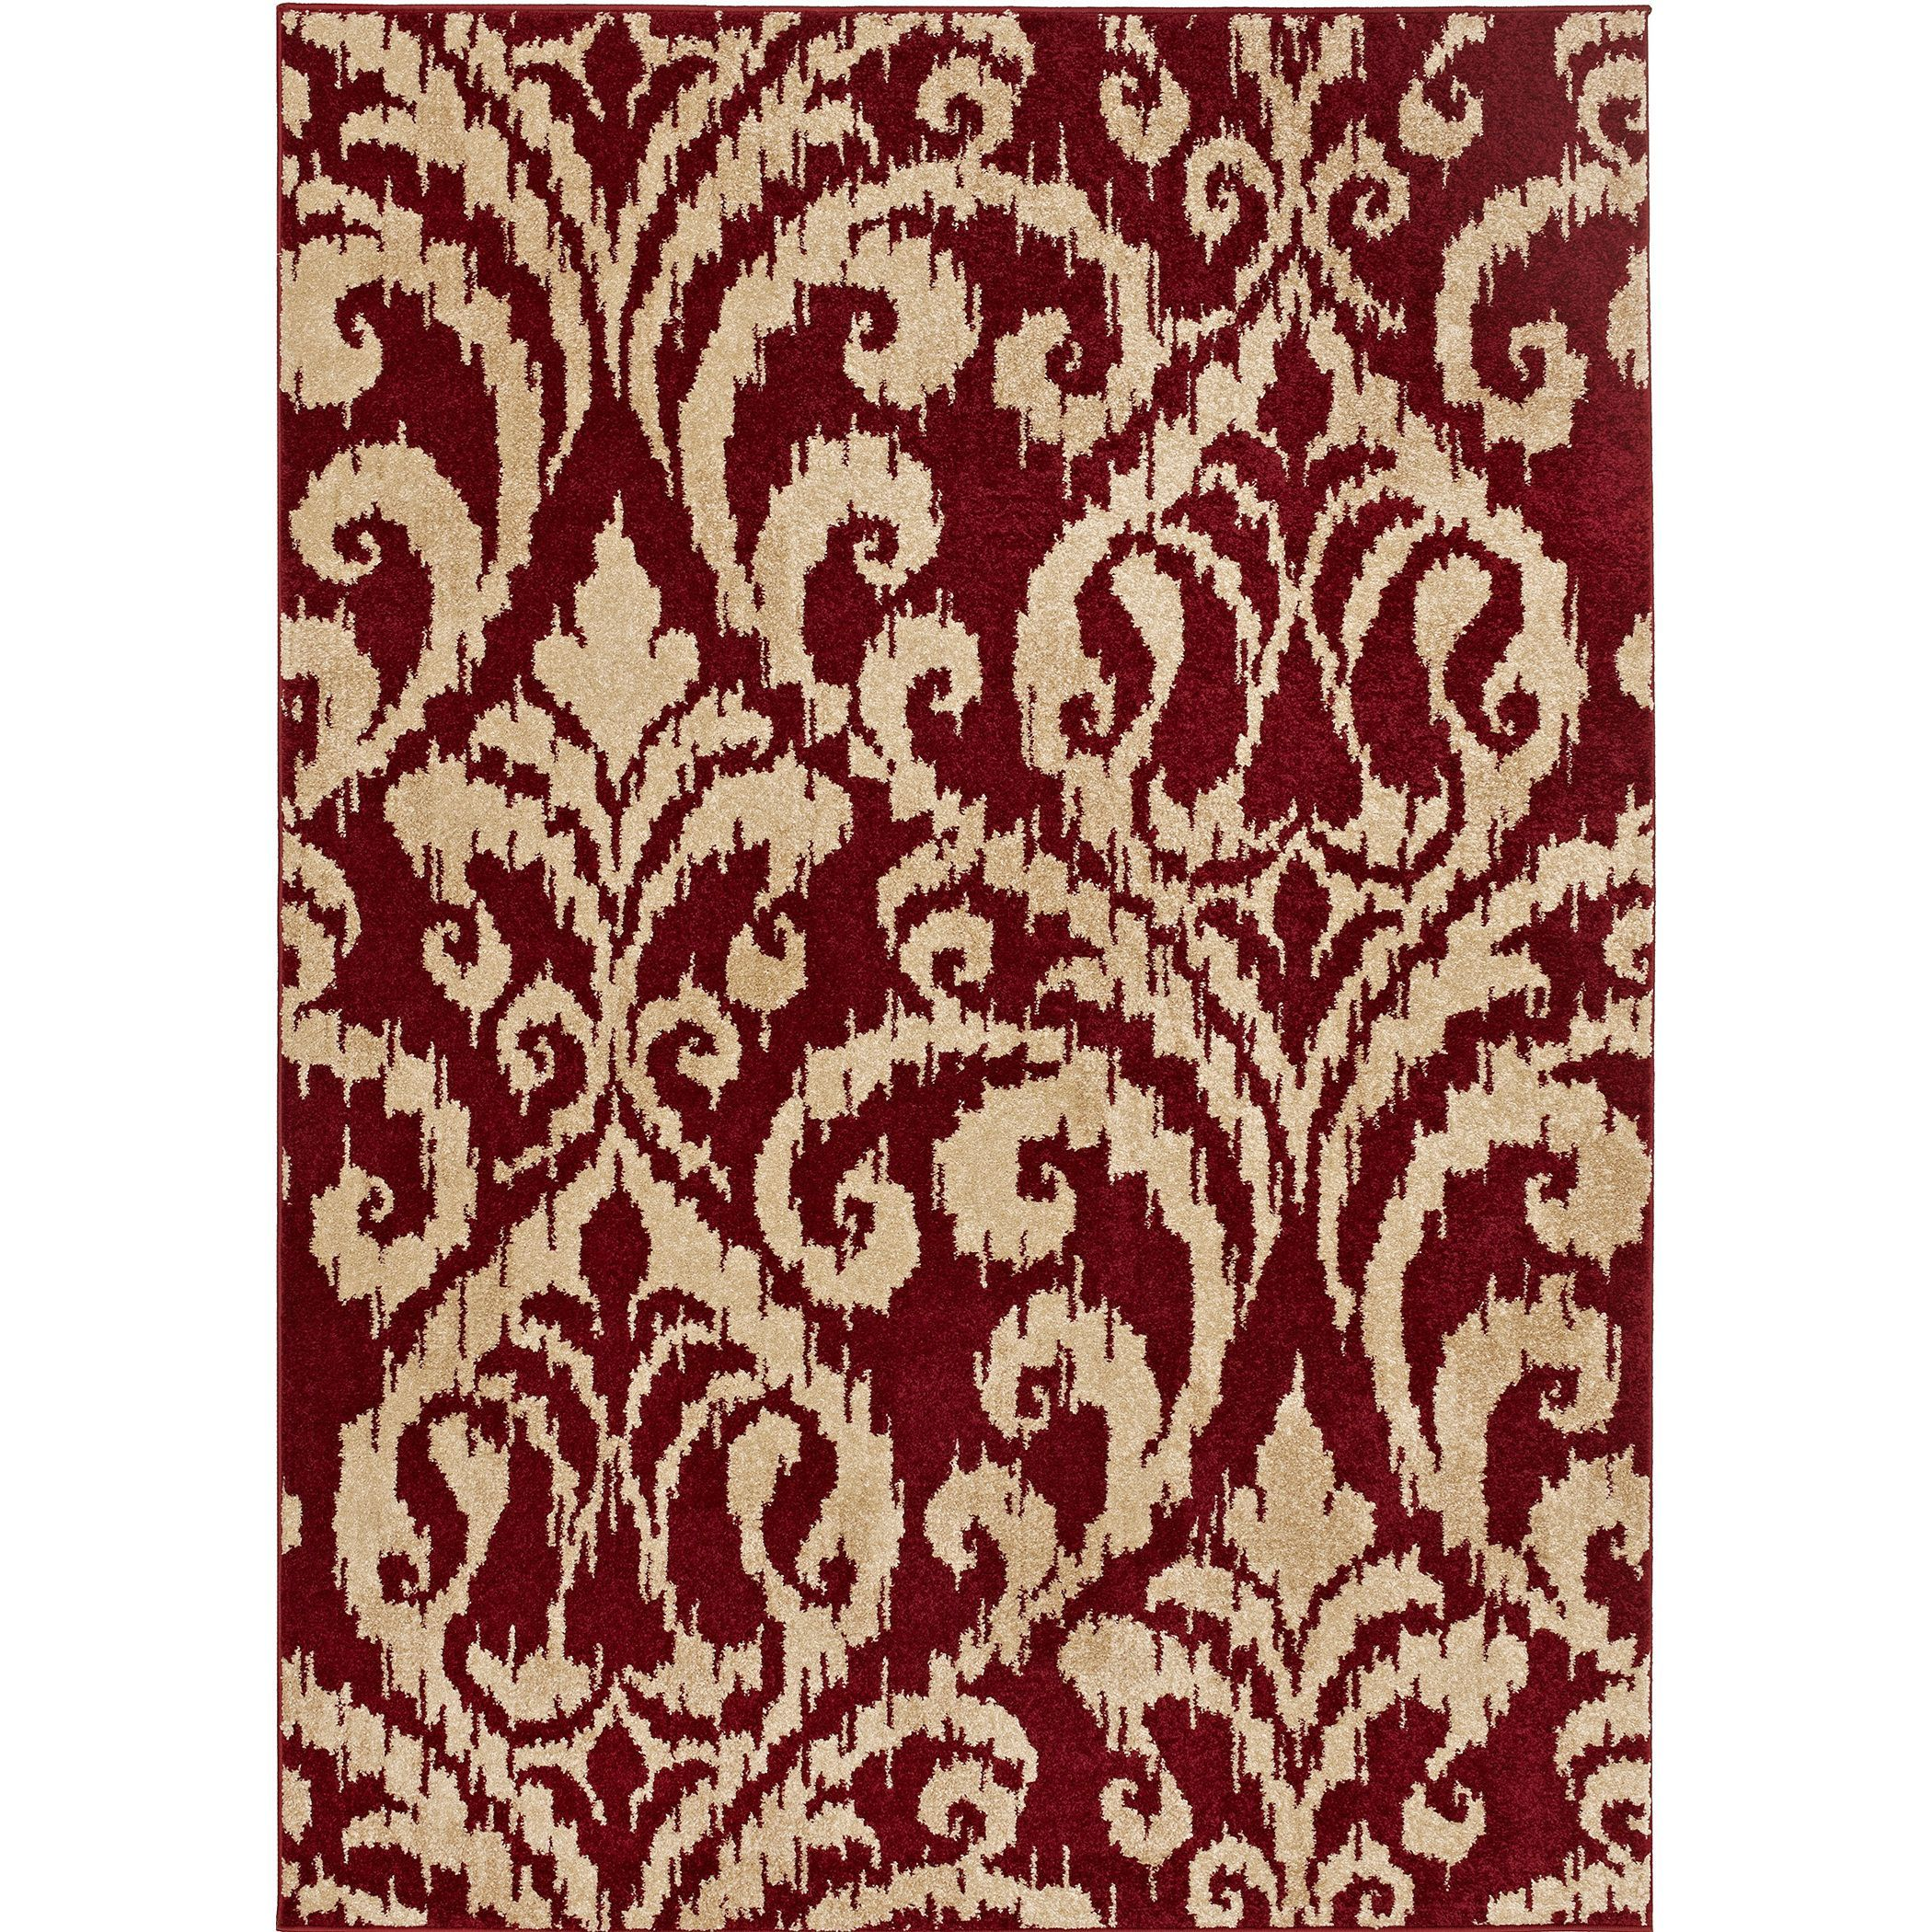 Loft Arrie Damask Design Garnet Red